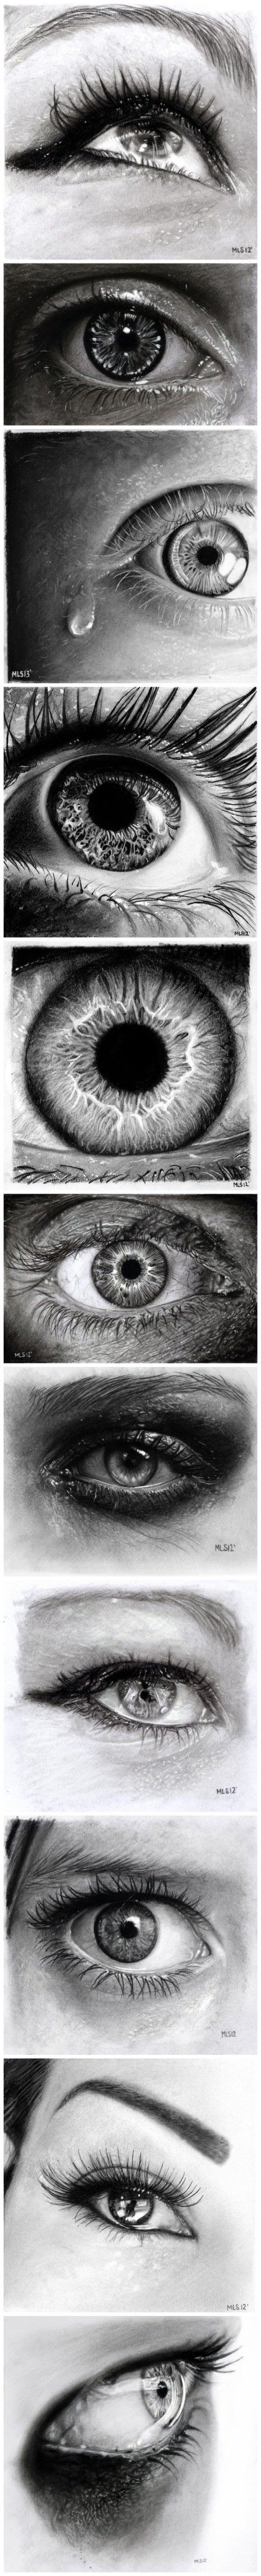 eyes---Pencil drawing must be charcoal pencils because I don't think graphite get that dark